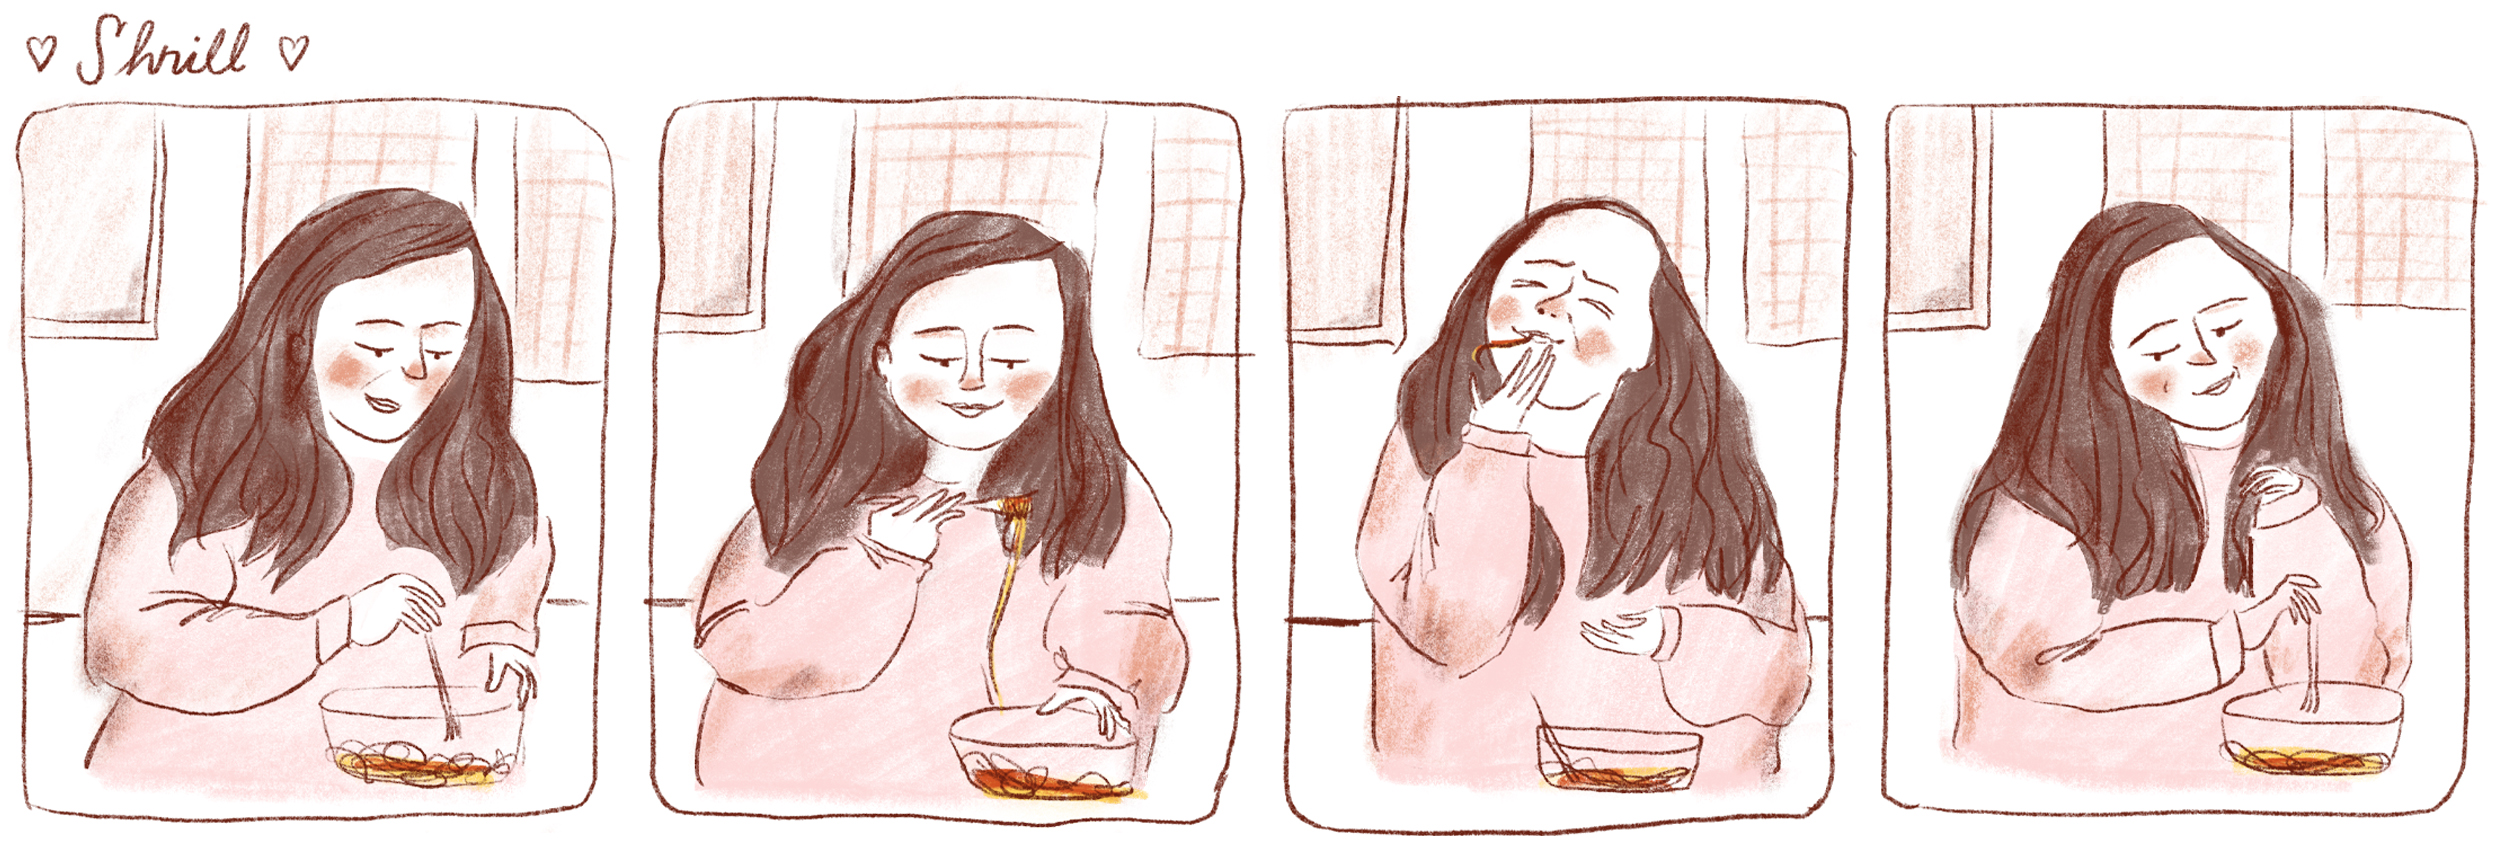 Comic inspired by the show Shrill with Aidy Bryant